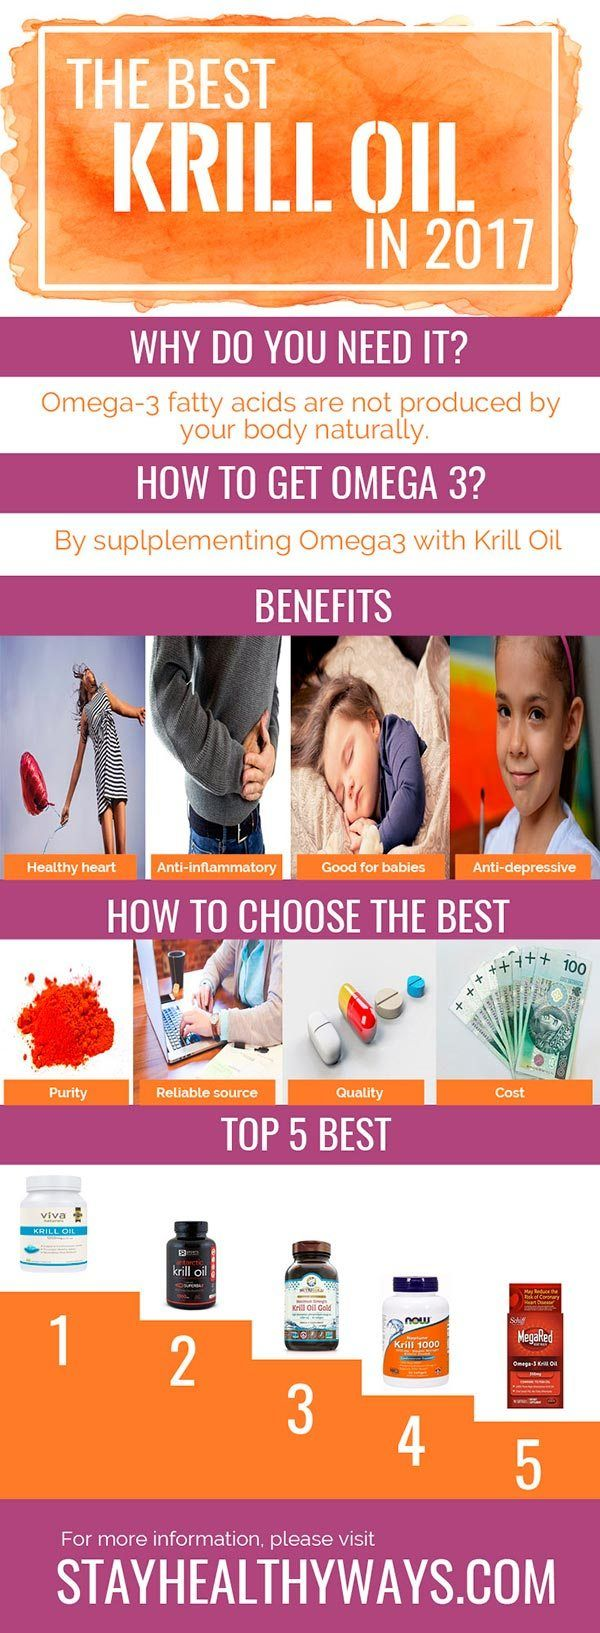 best krill oil infographic